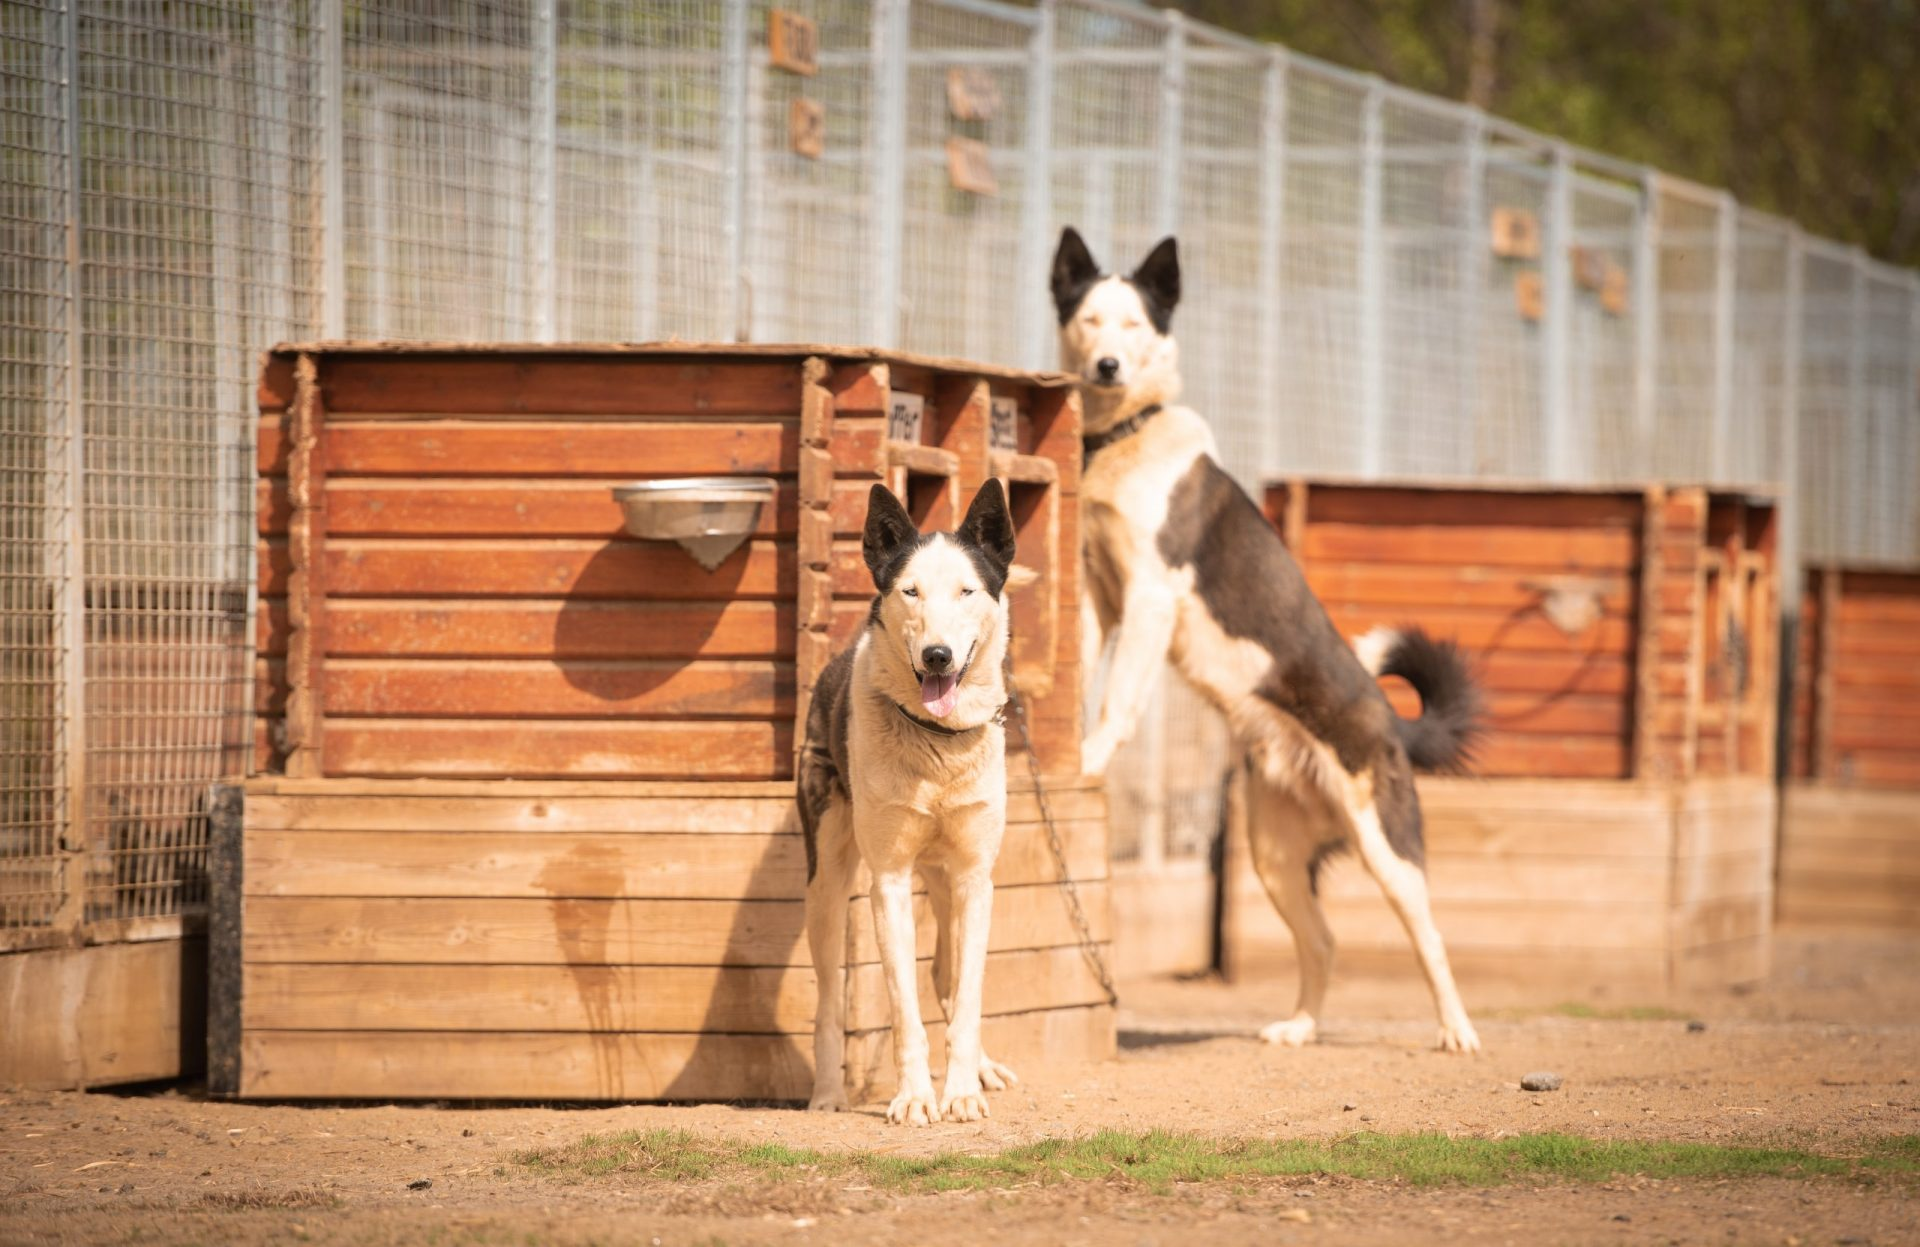 black and white alaskan huskies Steel and Cooper standing by wooden dog house